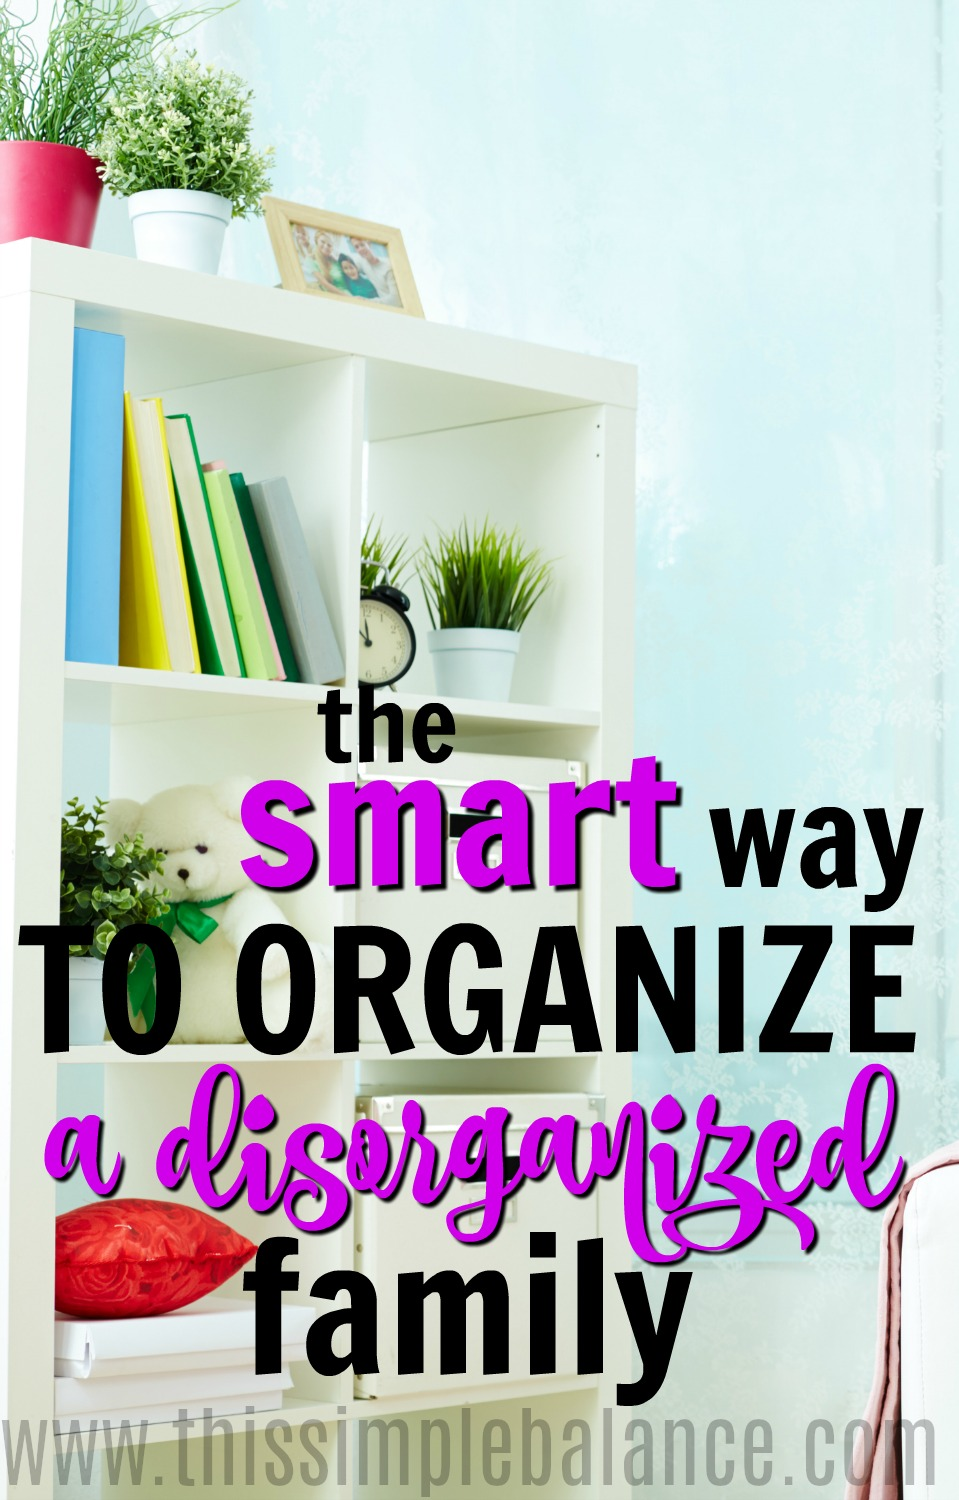 Is your disorganized family driving you CRAZY?! You discover the perfect organization ideas for the home, set it all up, and they totally ignore them. Dish to put their keys by the door? They drop them on the bookshelf instead: every. single. day. Stop doing the same thing over and over that IS NOT WORKING, and figure out a better way to organize so that your family actually gets it. #organizationideasforthehome #organizationtips